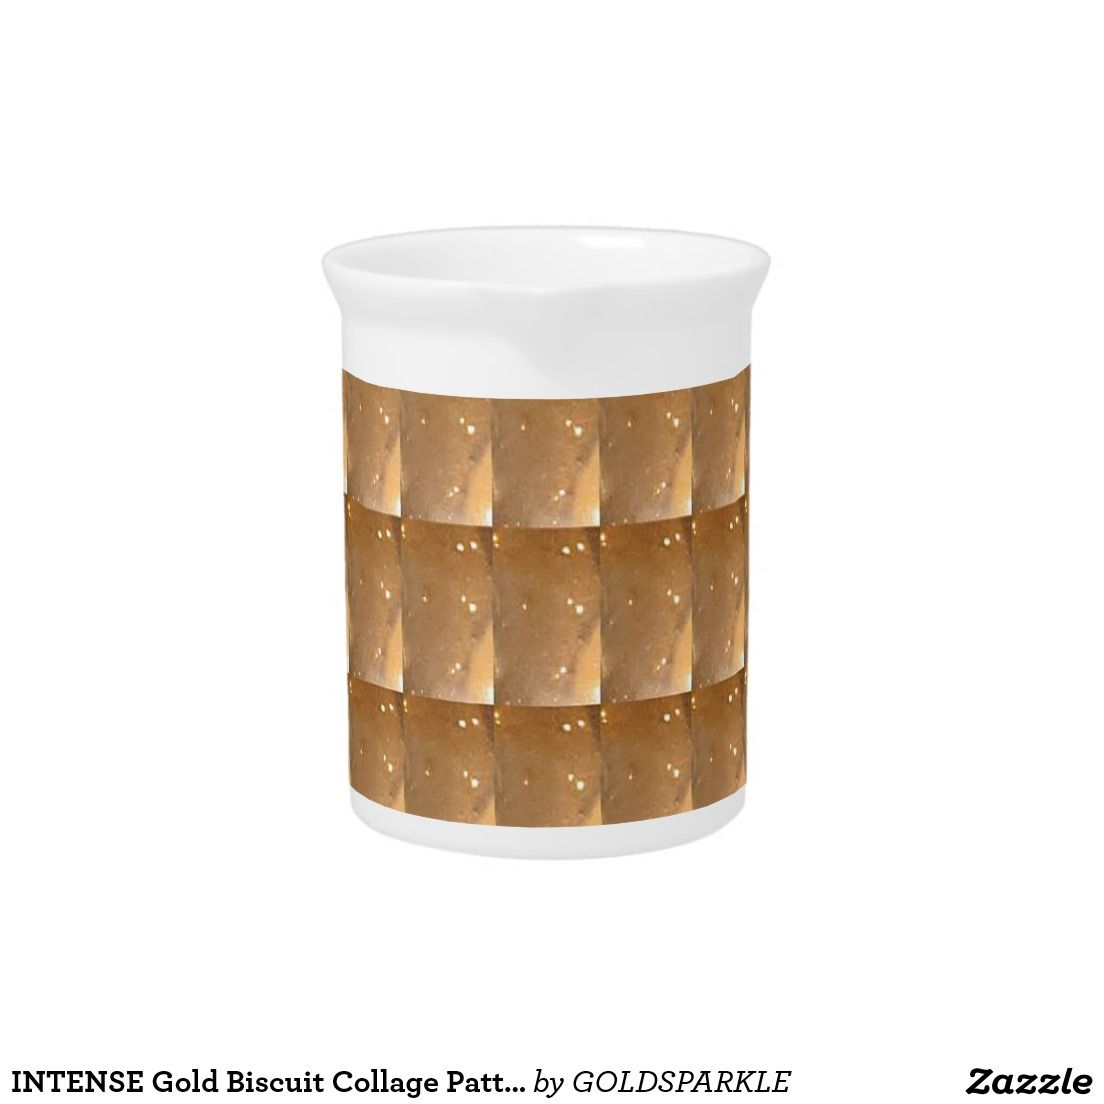 INTENSE Gold Biscuit Collage Pattern Graphic GIFTS Pitcher